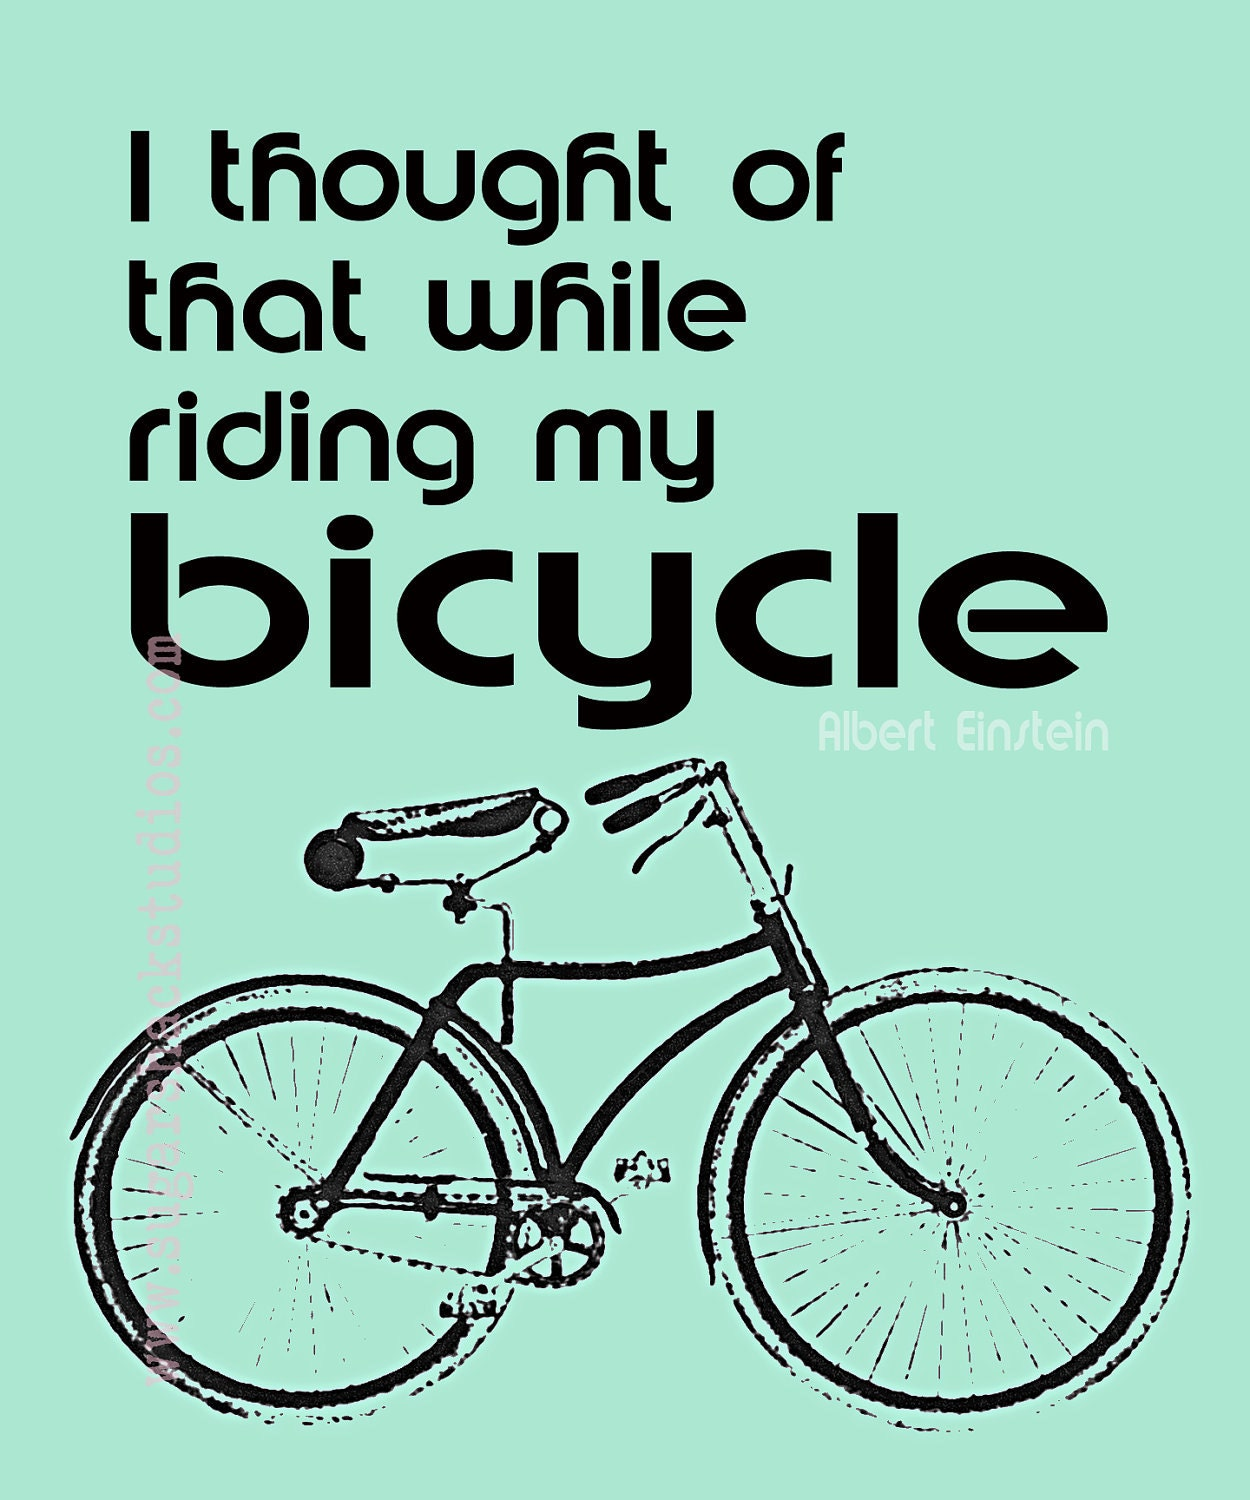 Bike Quotes: Your Place To Buy And Sell All Things Handmade